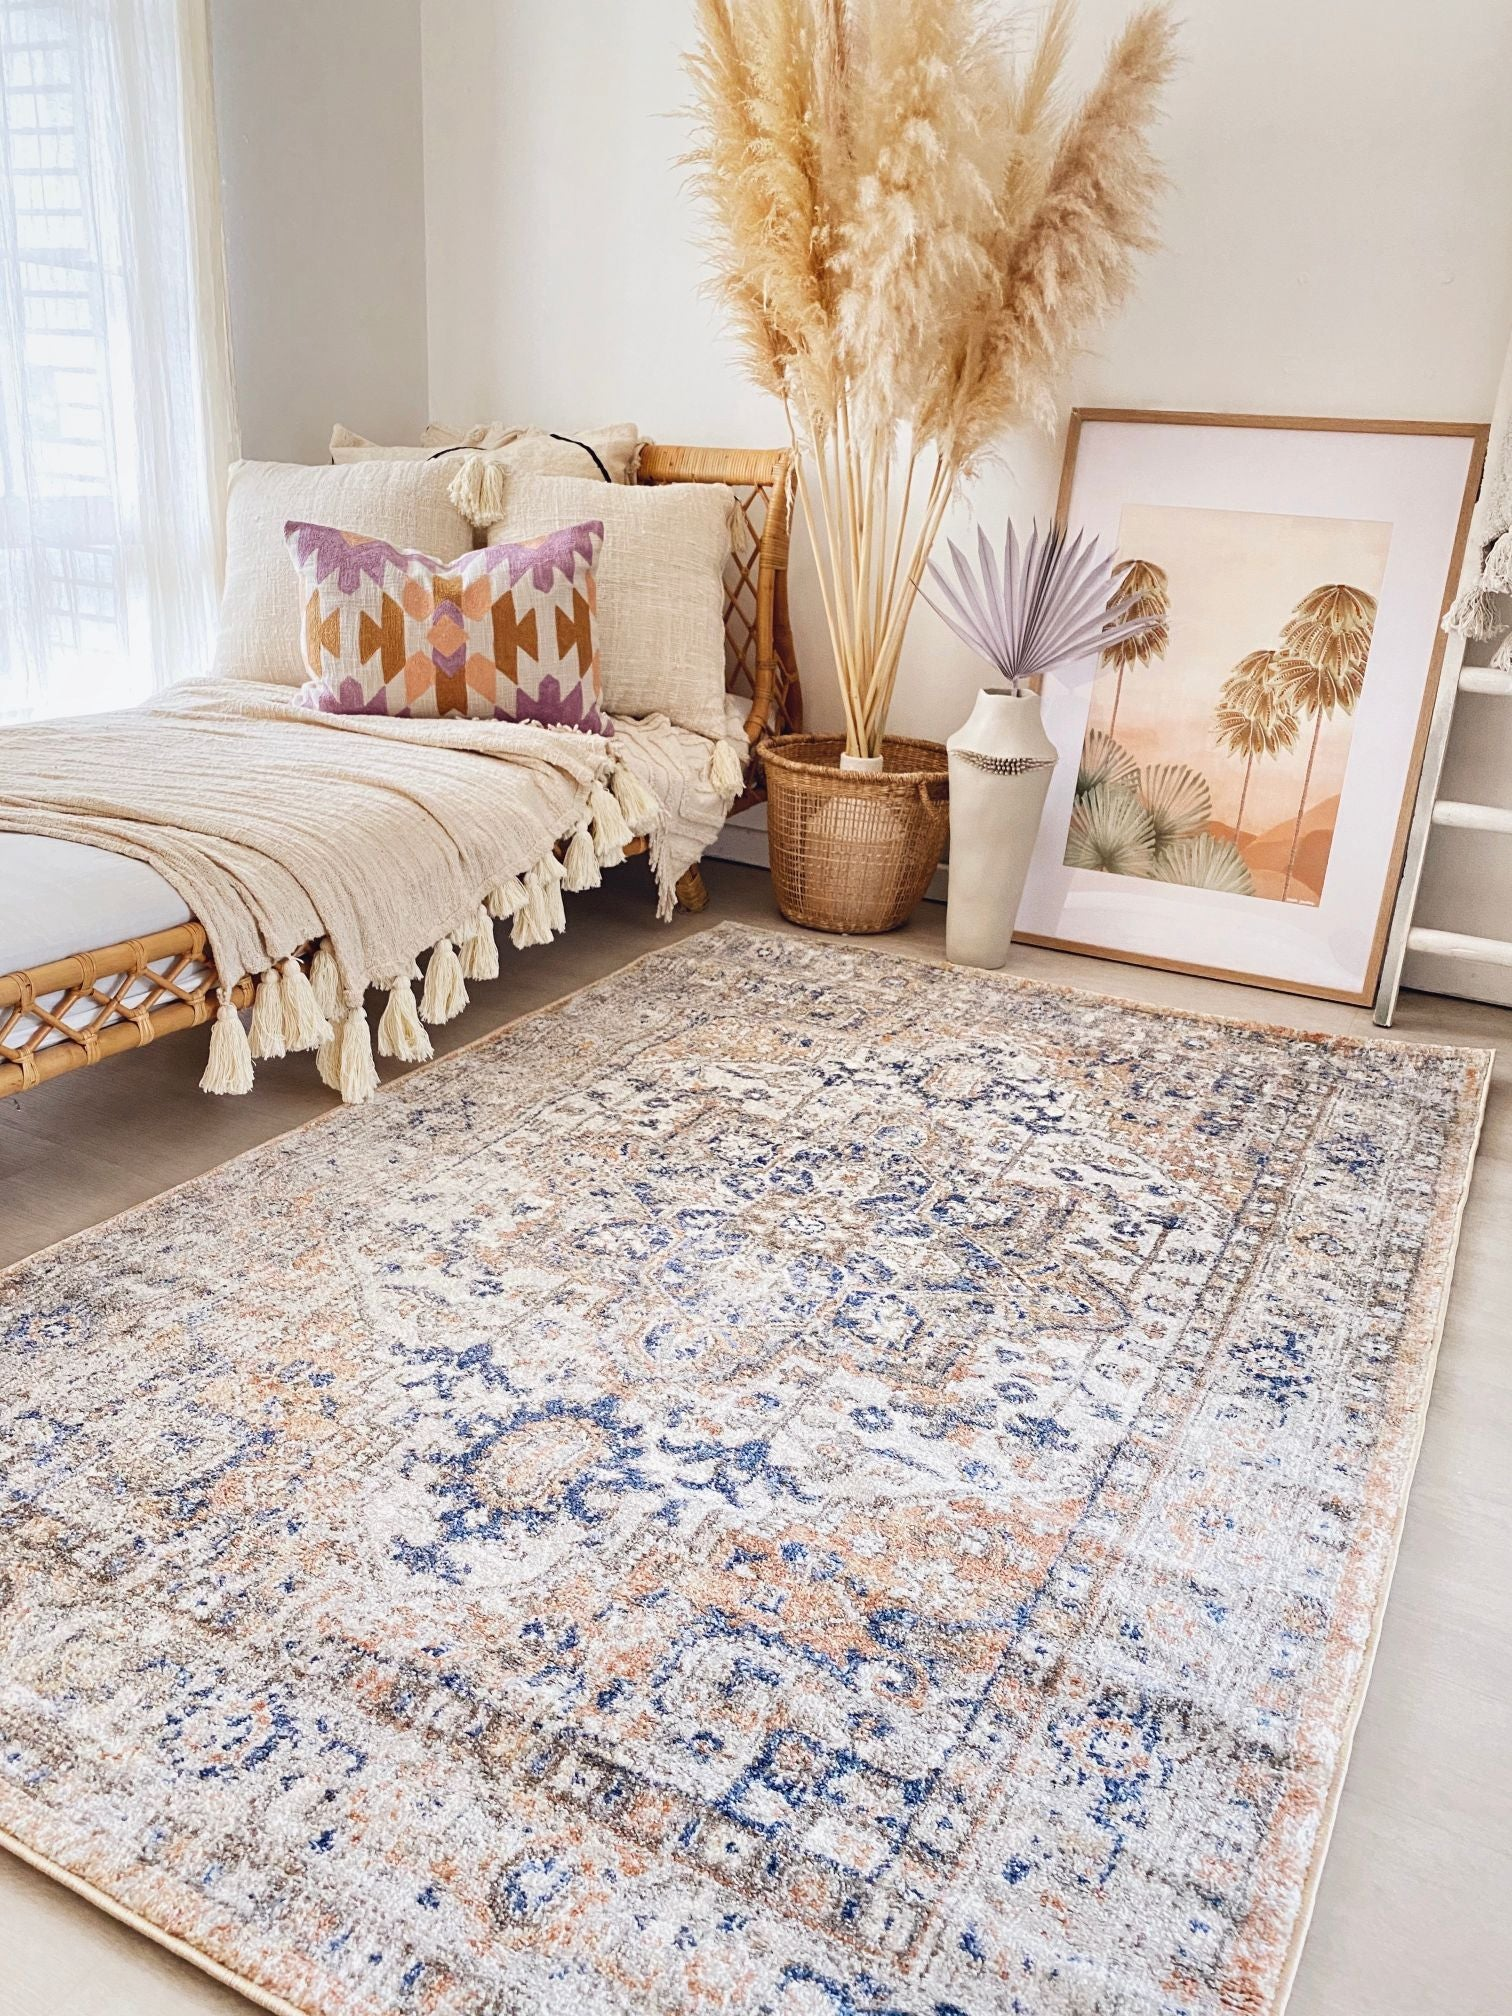 Silva Faded Apricot Blue Turkish Accent Nursery Rug